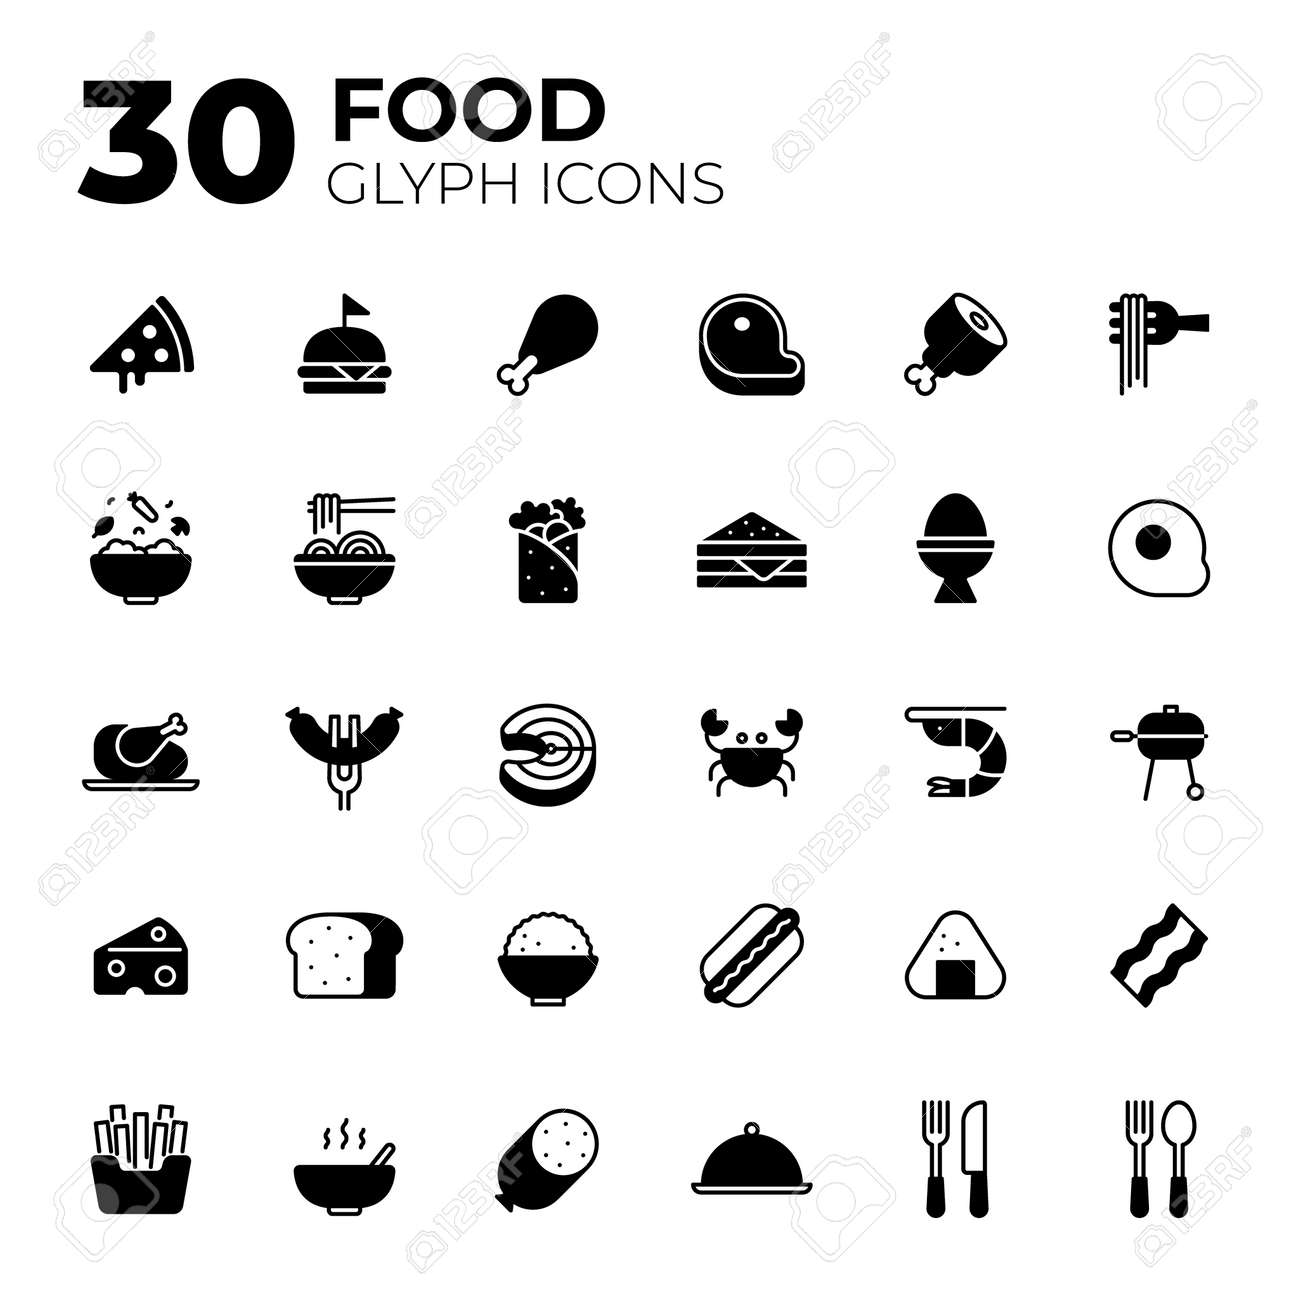 Glyph style Food icons. - 156309998